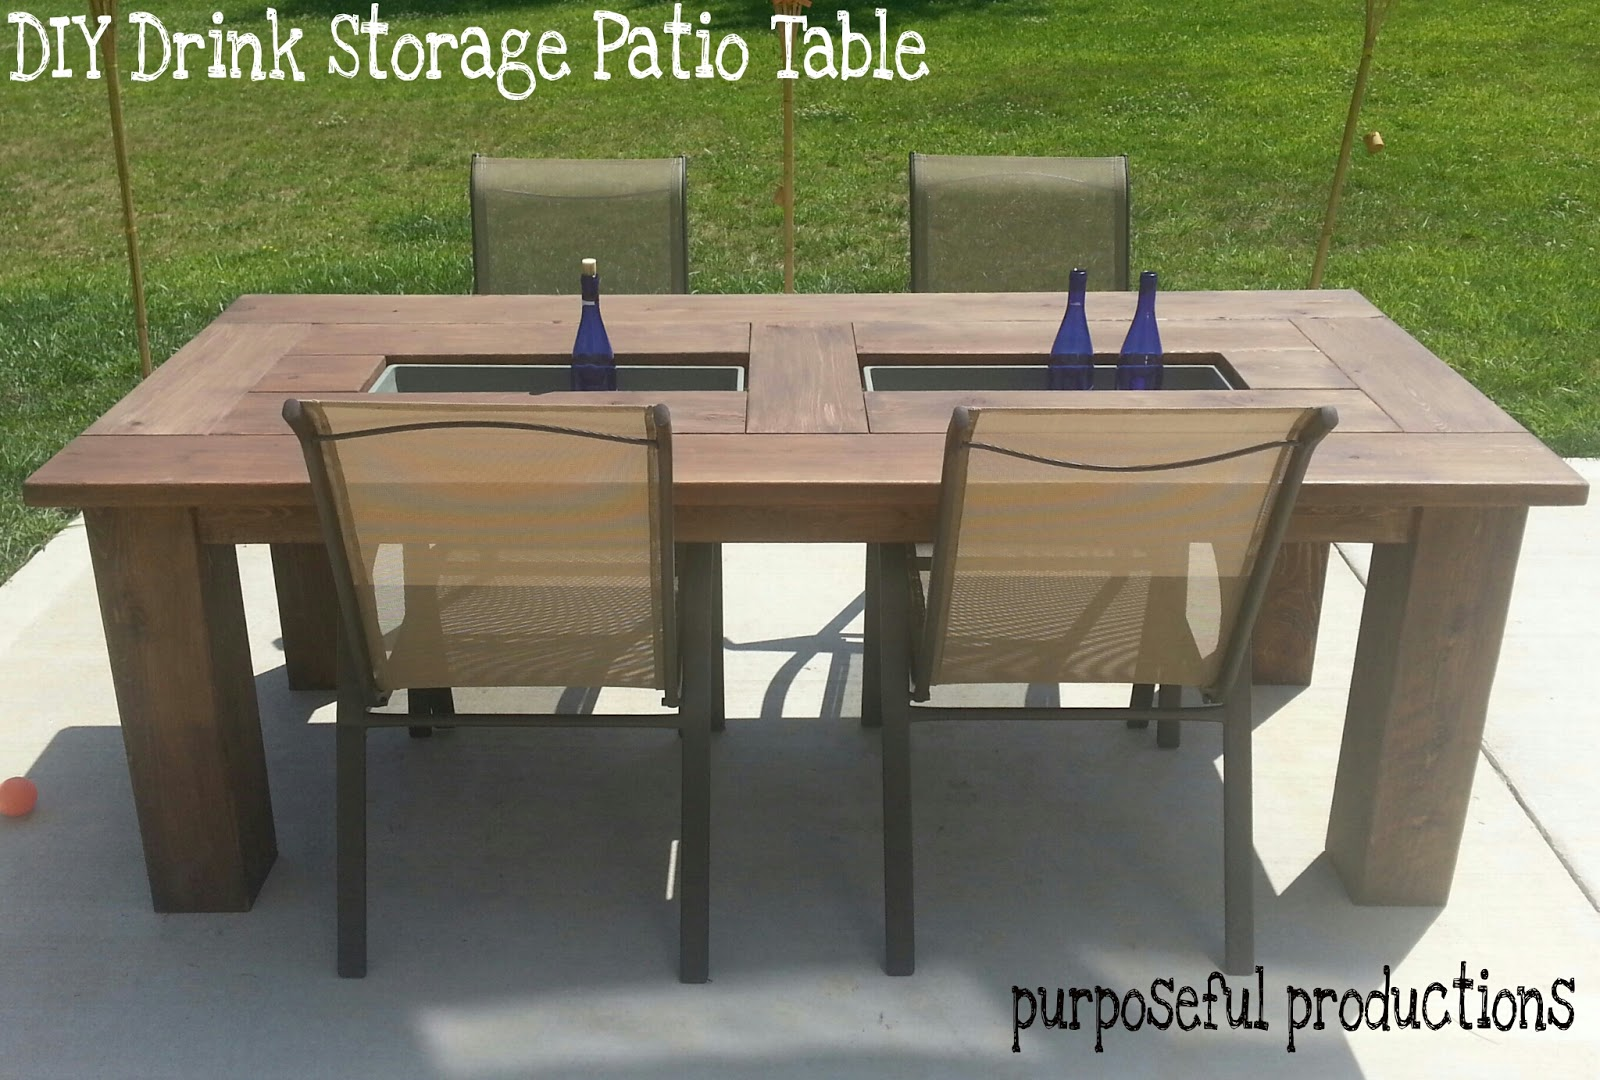 Purposeful Productions: DIY Wood Patio Table with Drink ...